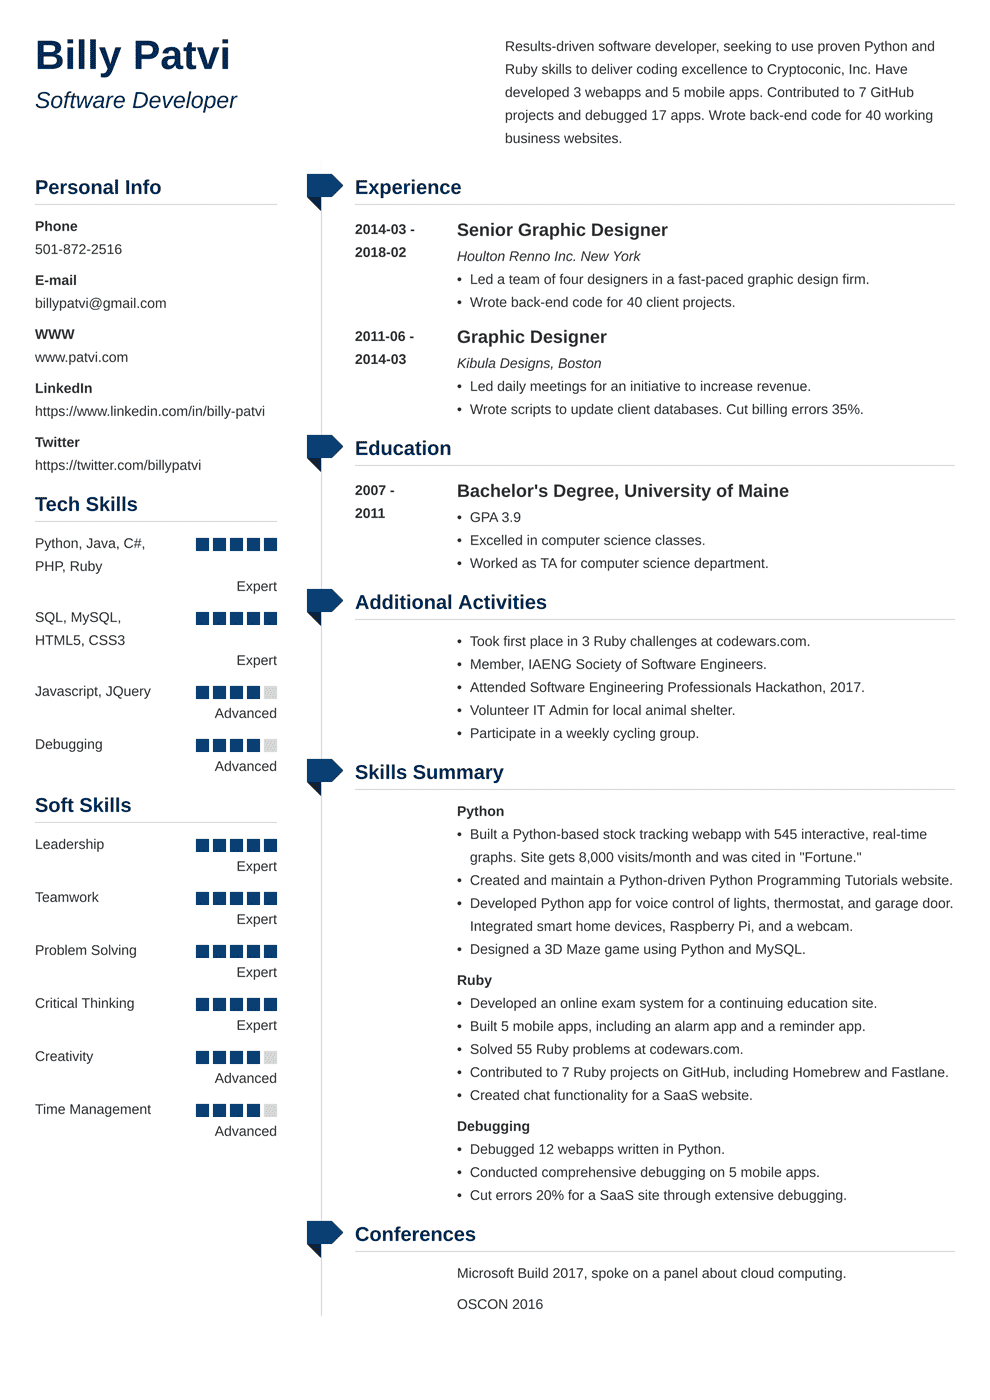 Career Change Resume: Sample and Complete Guide [+20 Examples]